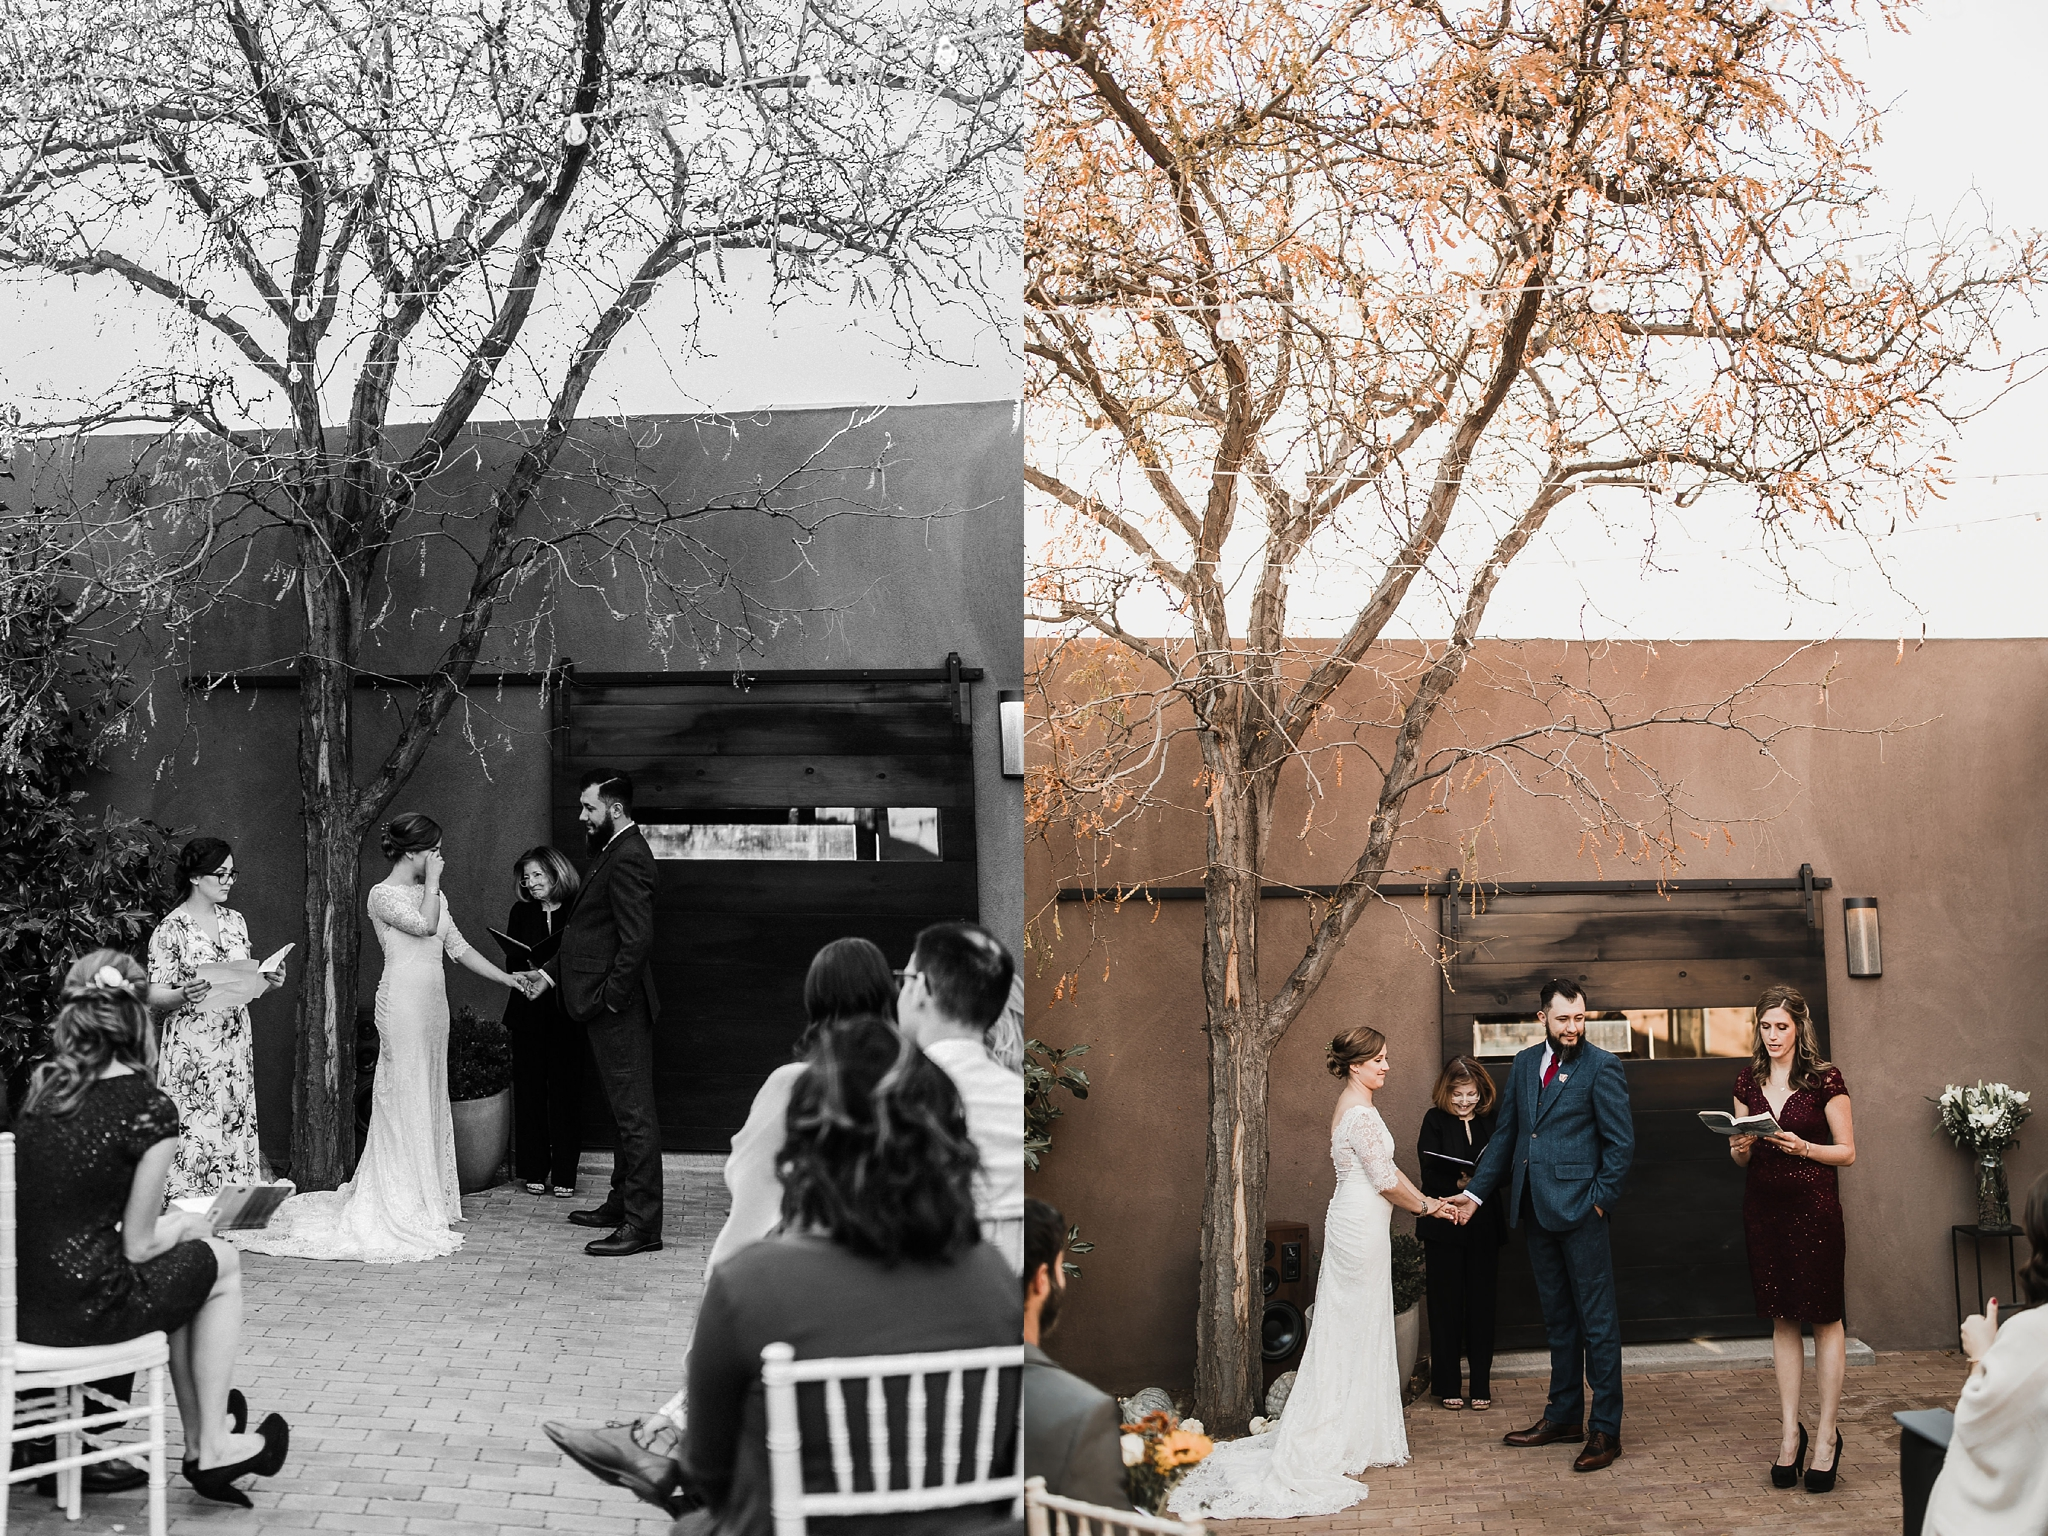 Alicia+lucia+photography+-+albuquerque+wedding+photographer+-+santa+fe+wedding+photography+-+new+mexico+wedding+photographer+-+albuquerque+wedding+-+sarabande+bed+breakfast+-+bed+and+breakfast+wedding_0050.jpg